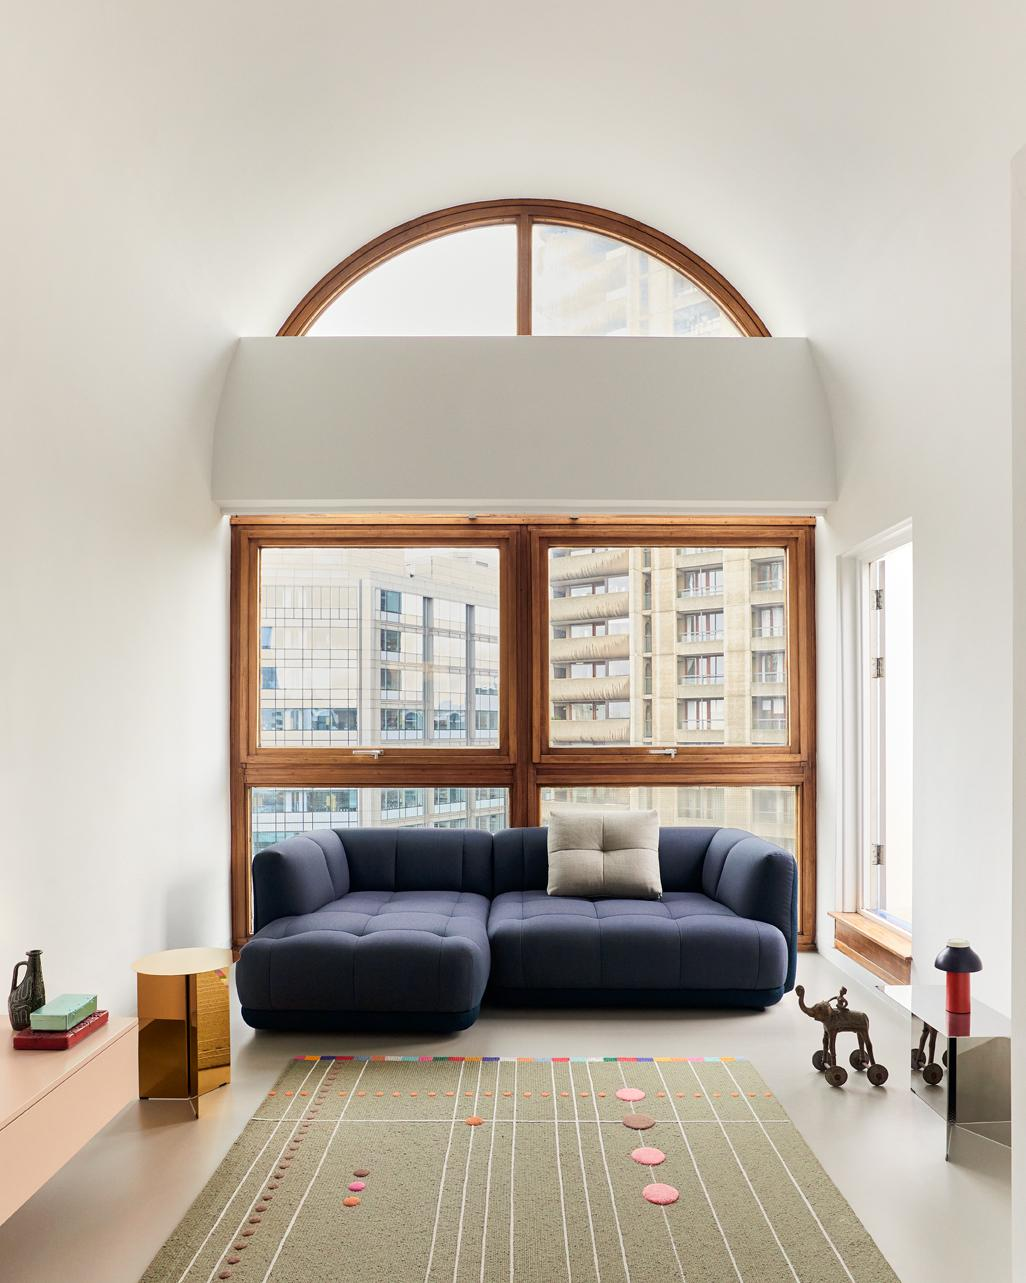 The Quilton sofa by Doshi Levien for Hay in blue, photographed at the Barbican in London against a wide window from which the building's architecture is visible